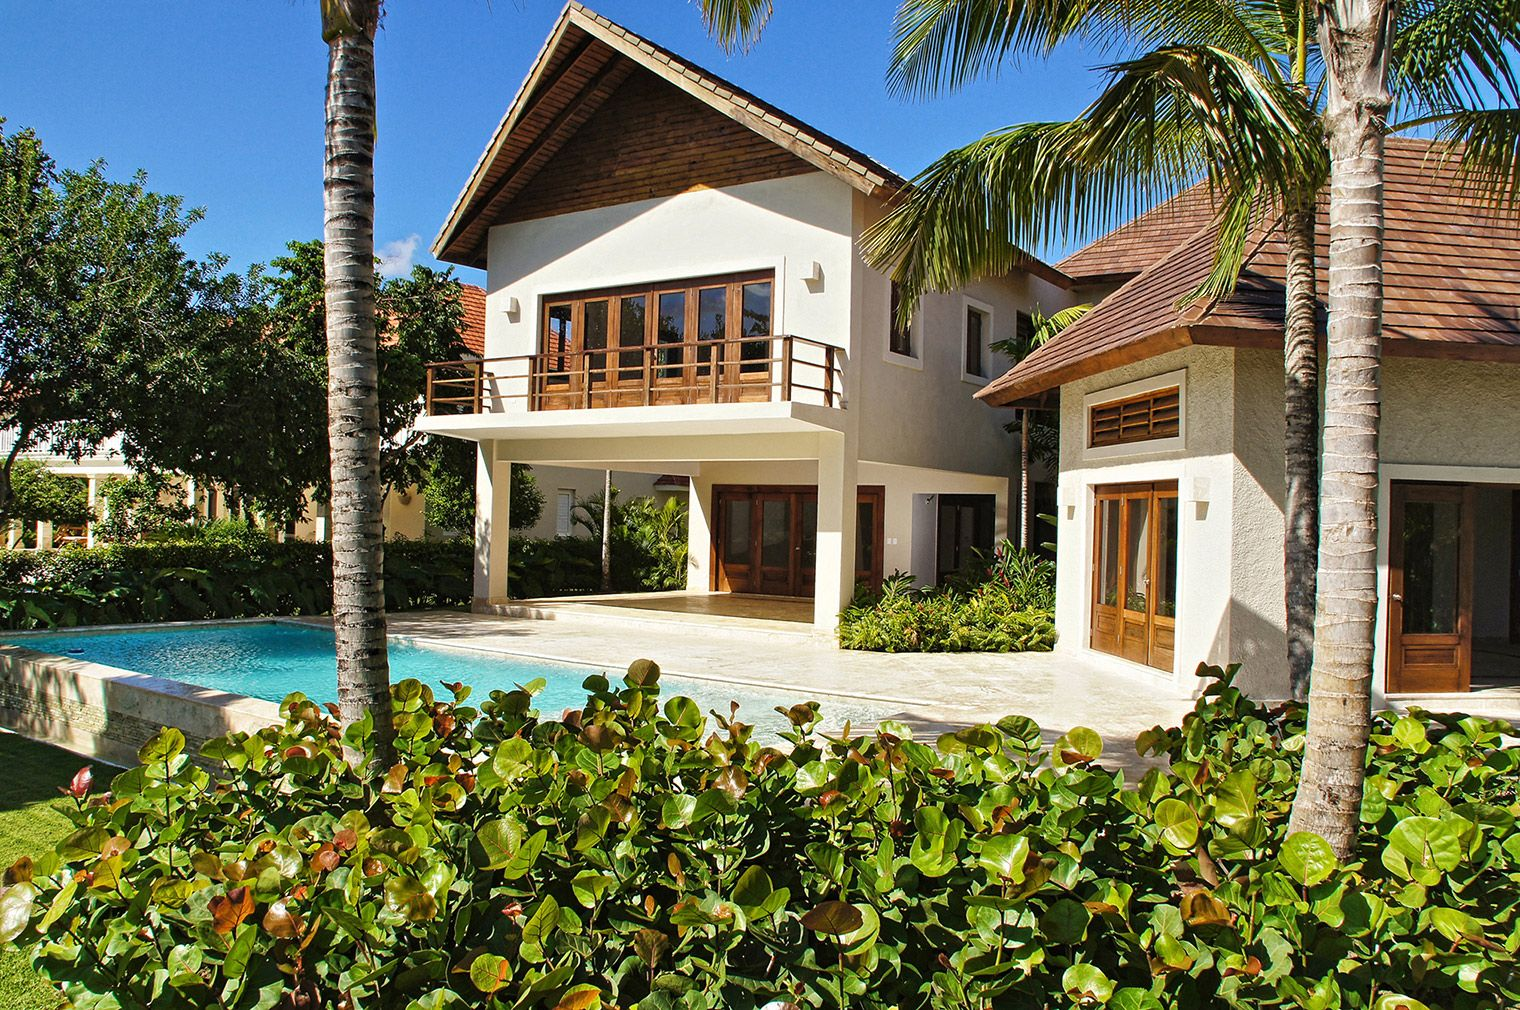 Tortuga Bay Estate home overlooking La Cana Golf Course. Designed and constructed by Grupo Dupla, Dominican Republic. #dominicanrepublicrealestate,  #luxuryrealestate, #luxuryhomebuilder, #design, #architech